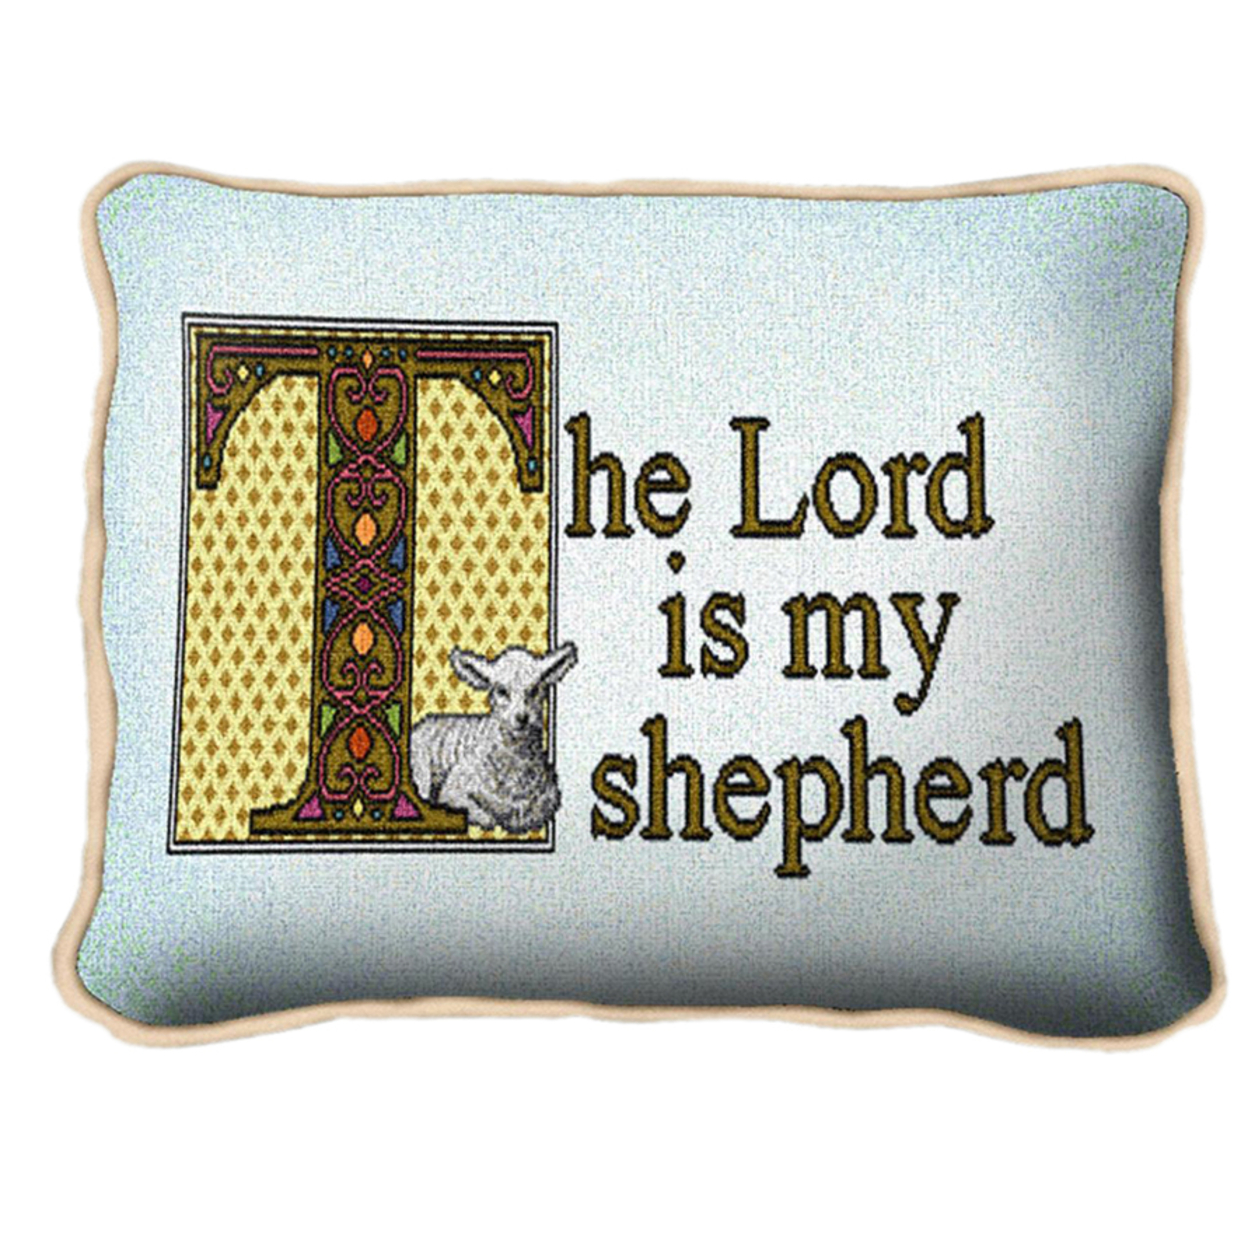 Pure Country Weavers Home Decorative The Lord Pillow 595a2cec2a00e442c81afced